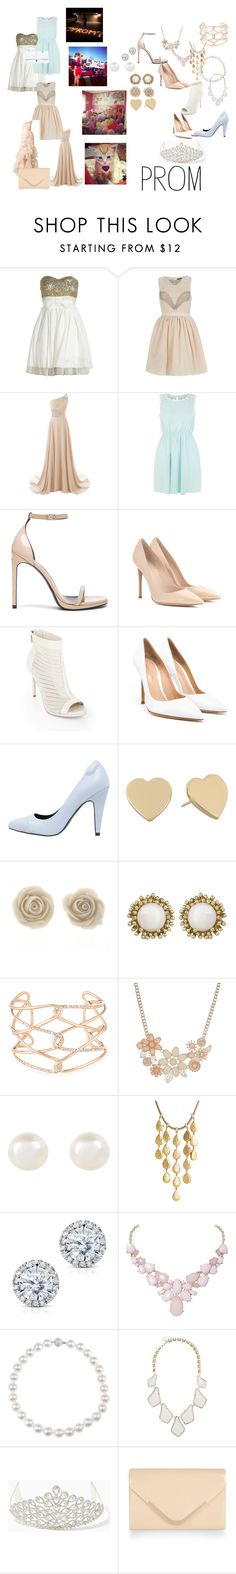 """Prom"" by geecat on Polyvore featuring Off-White, River Island, Madam Rage, Yves Saint Laurent, Gianvito Rossi, BCBGMAXAZRIA, even&odd, Kate Spade, Kendra Scott and Alexis Bittar"